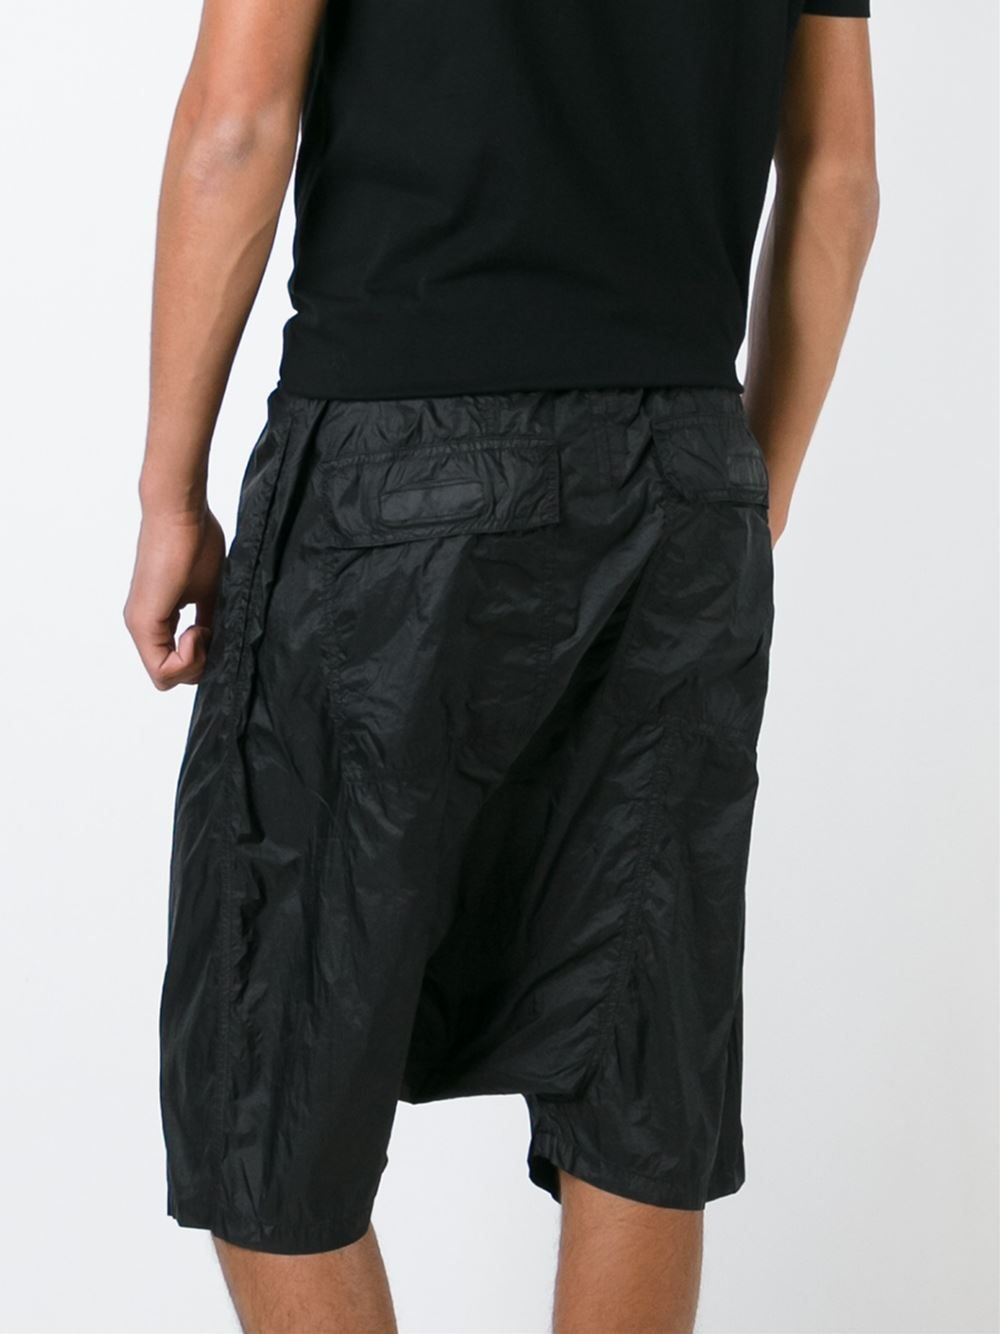 With Paypal Free Shipping drop crotch shorts - Black Rick Owens Outlet Cheap Authentic Many Kinds Of Sale Online JvgaT